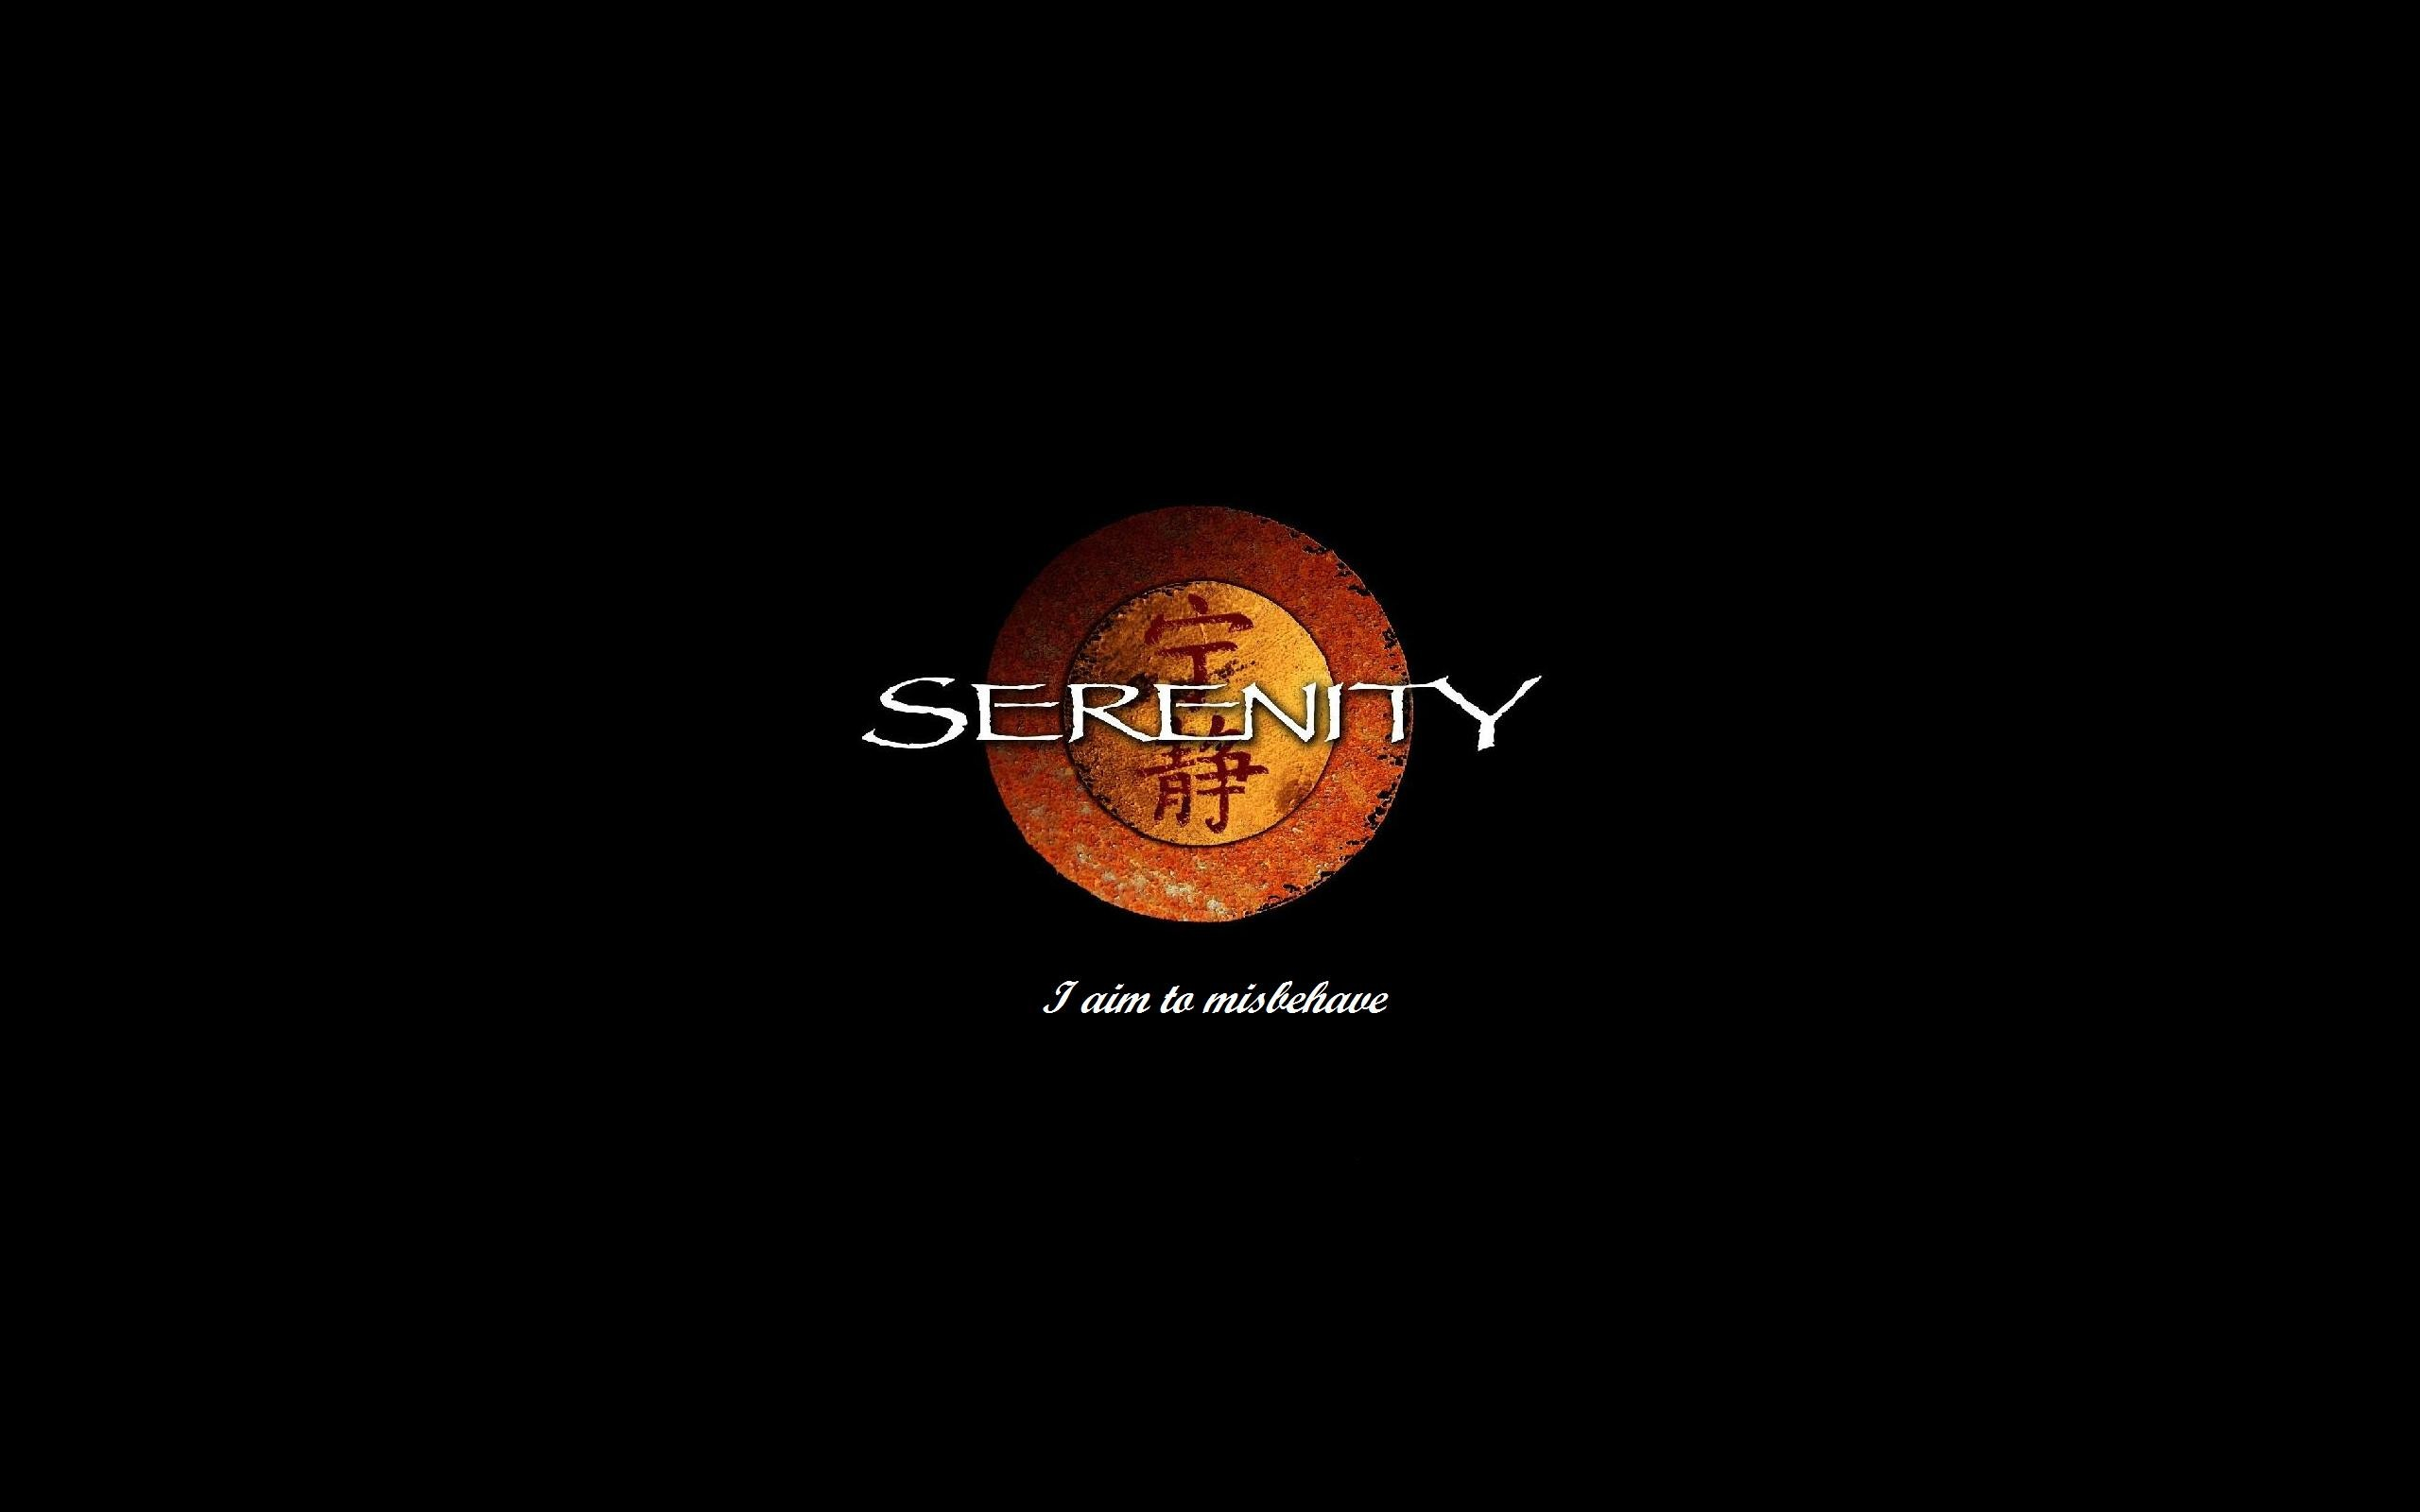 2560x1600 serenity minimalistic movies text five finger death punch HD Wallpaper .